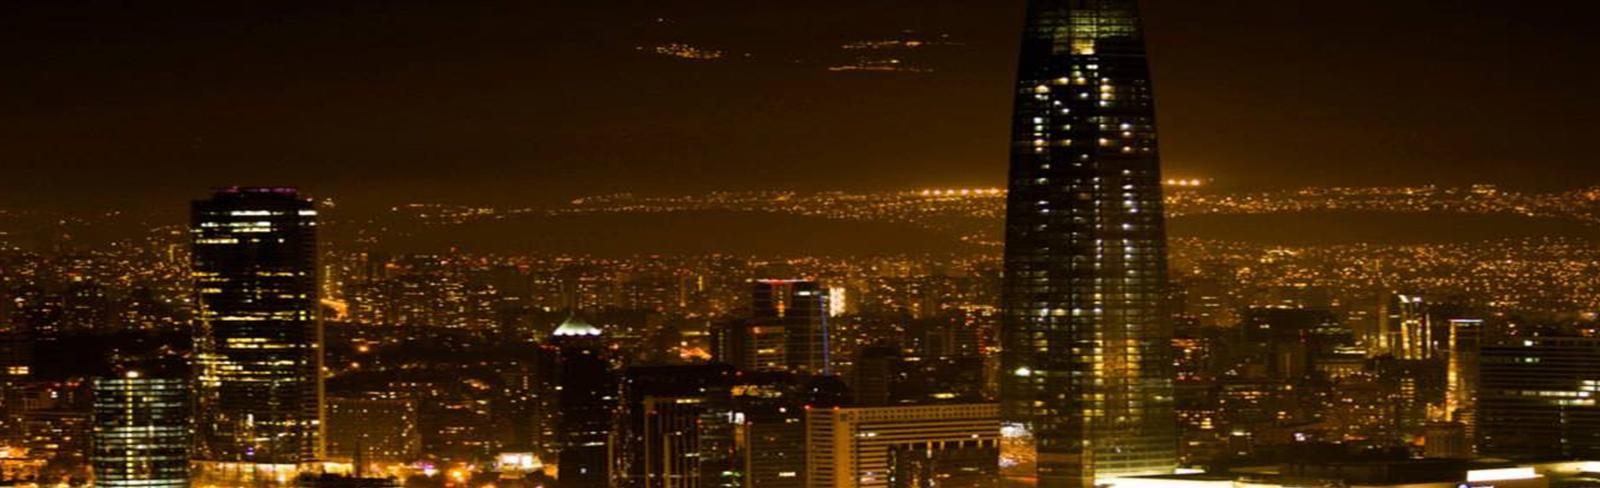 Santiago, Chile at night